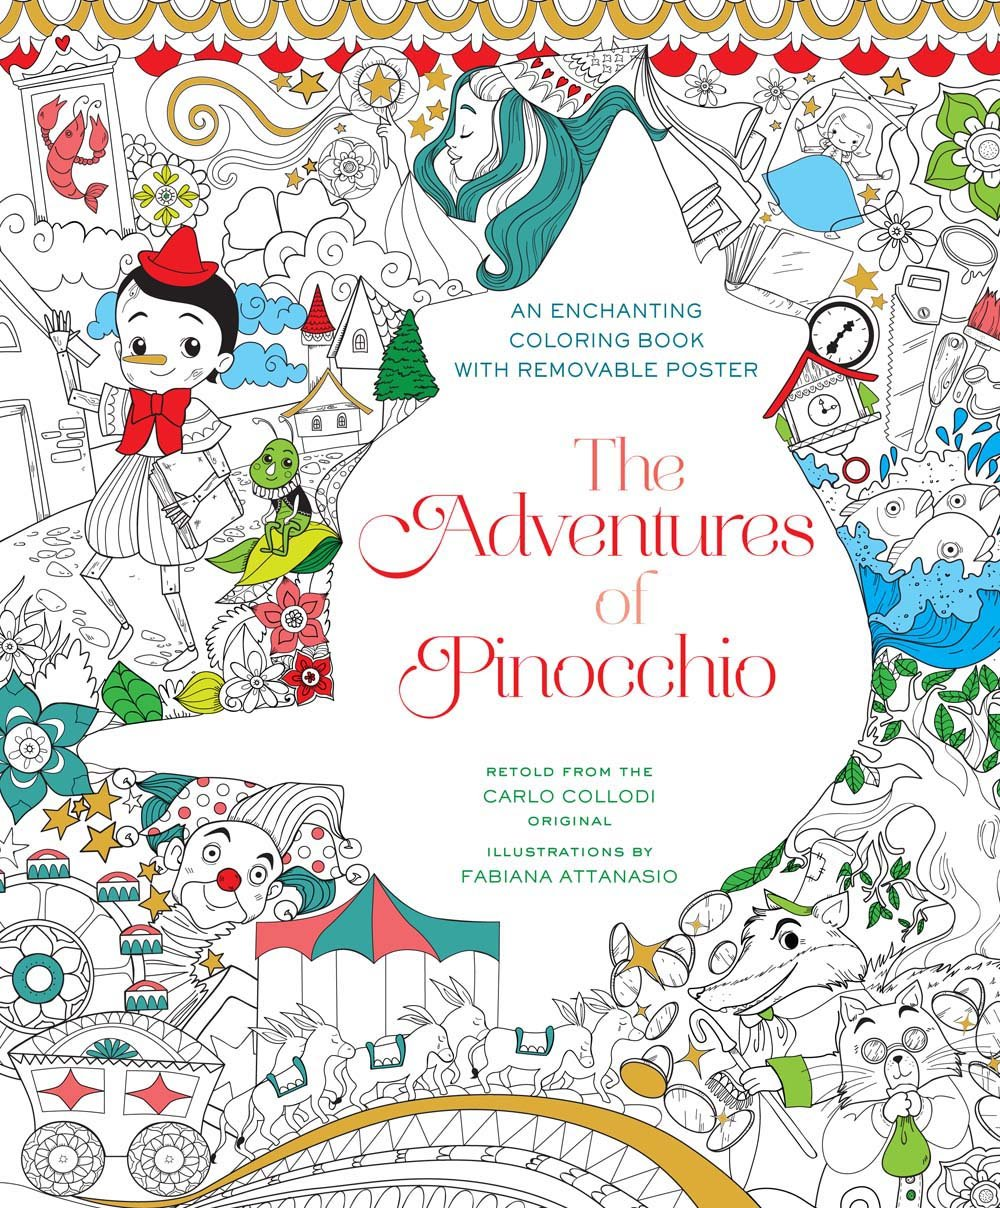 The Adventures of Pinocchio Coloring Book - Fabiana Attanasio